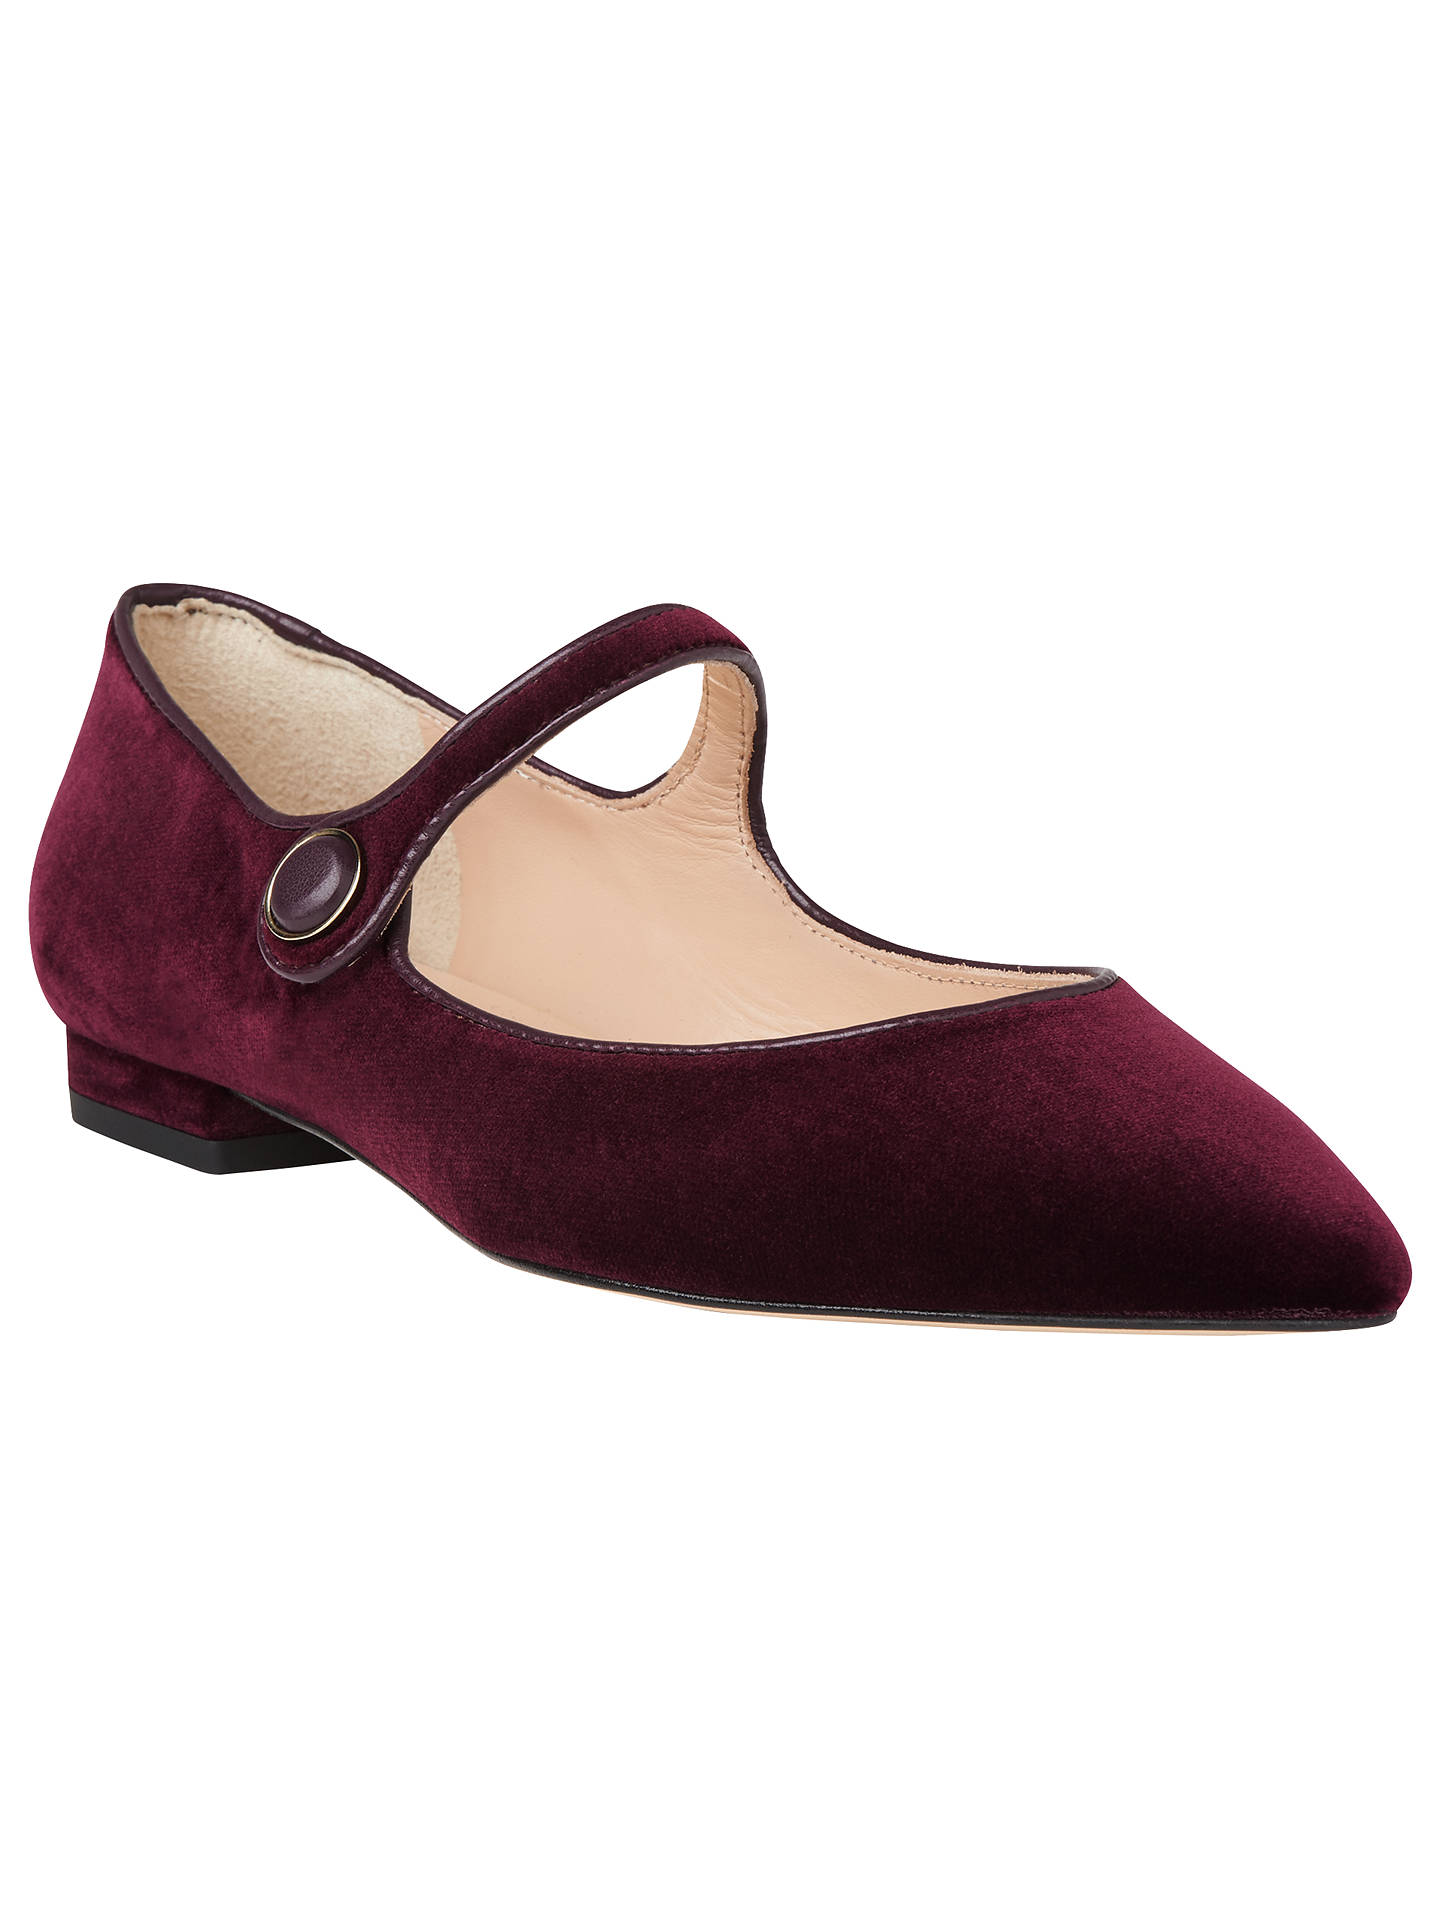 313a75c2c Buy L.K. Bennett Mary Jane Pumps, Purple, 2 Online at johnlewis.com ...